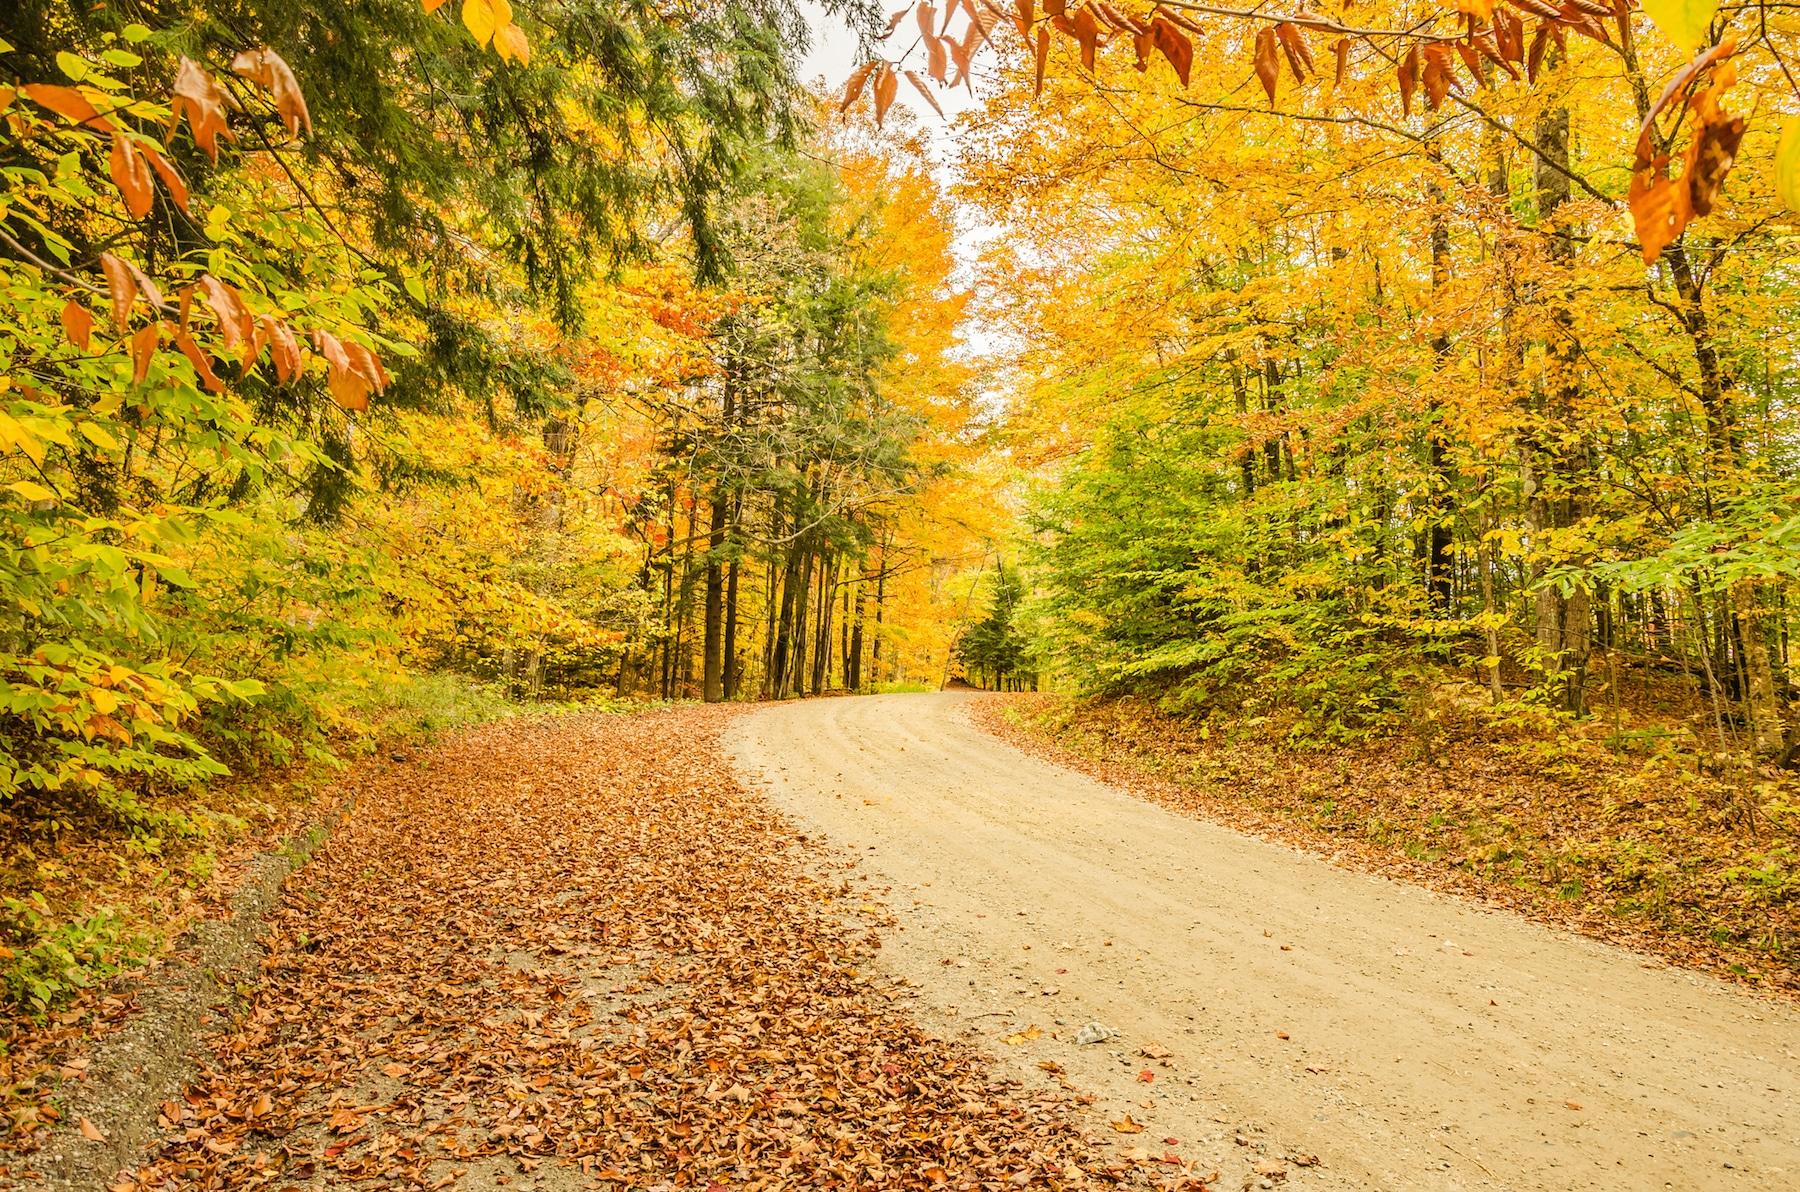 A dirt road lined with colourful trees in Vermont.